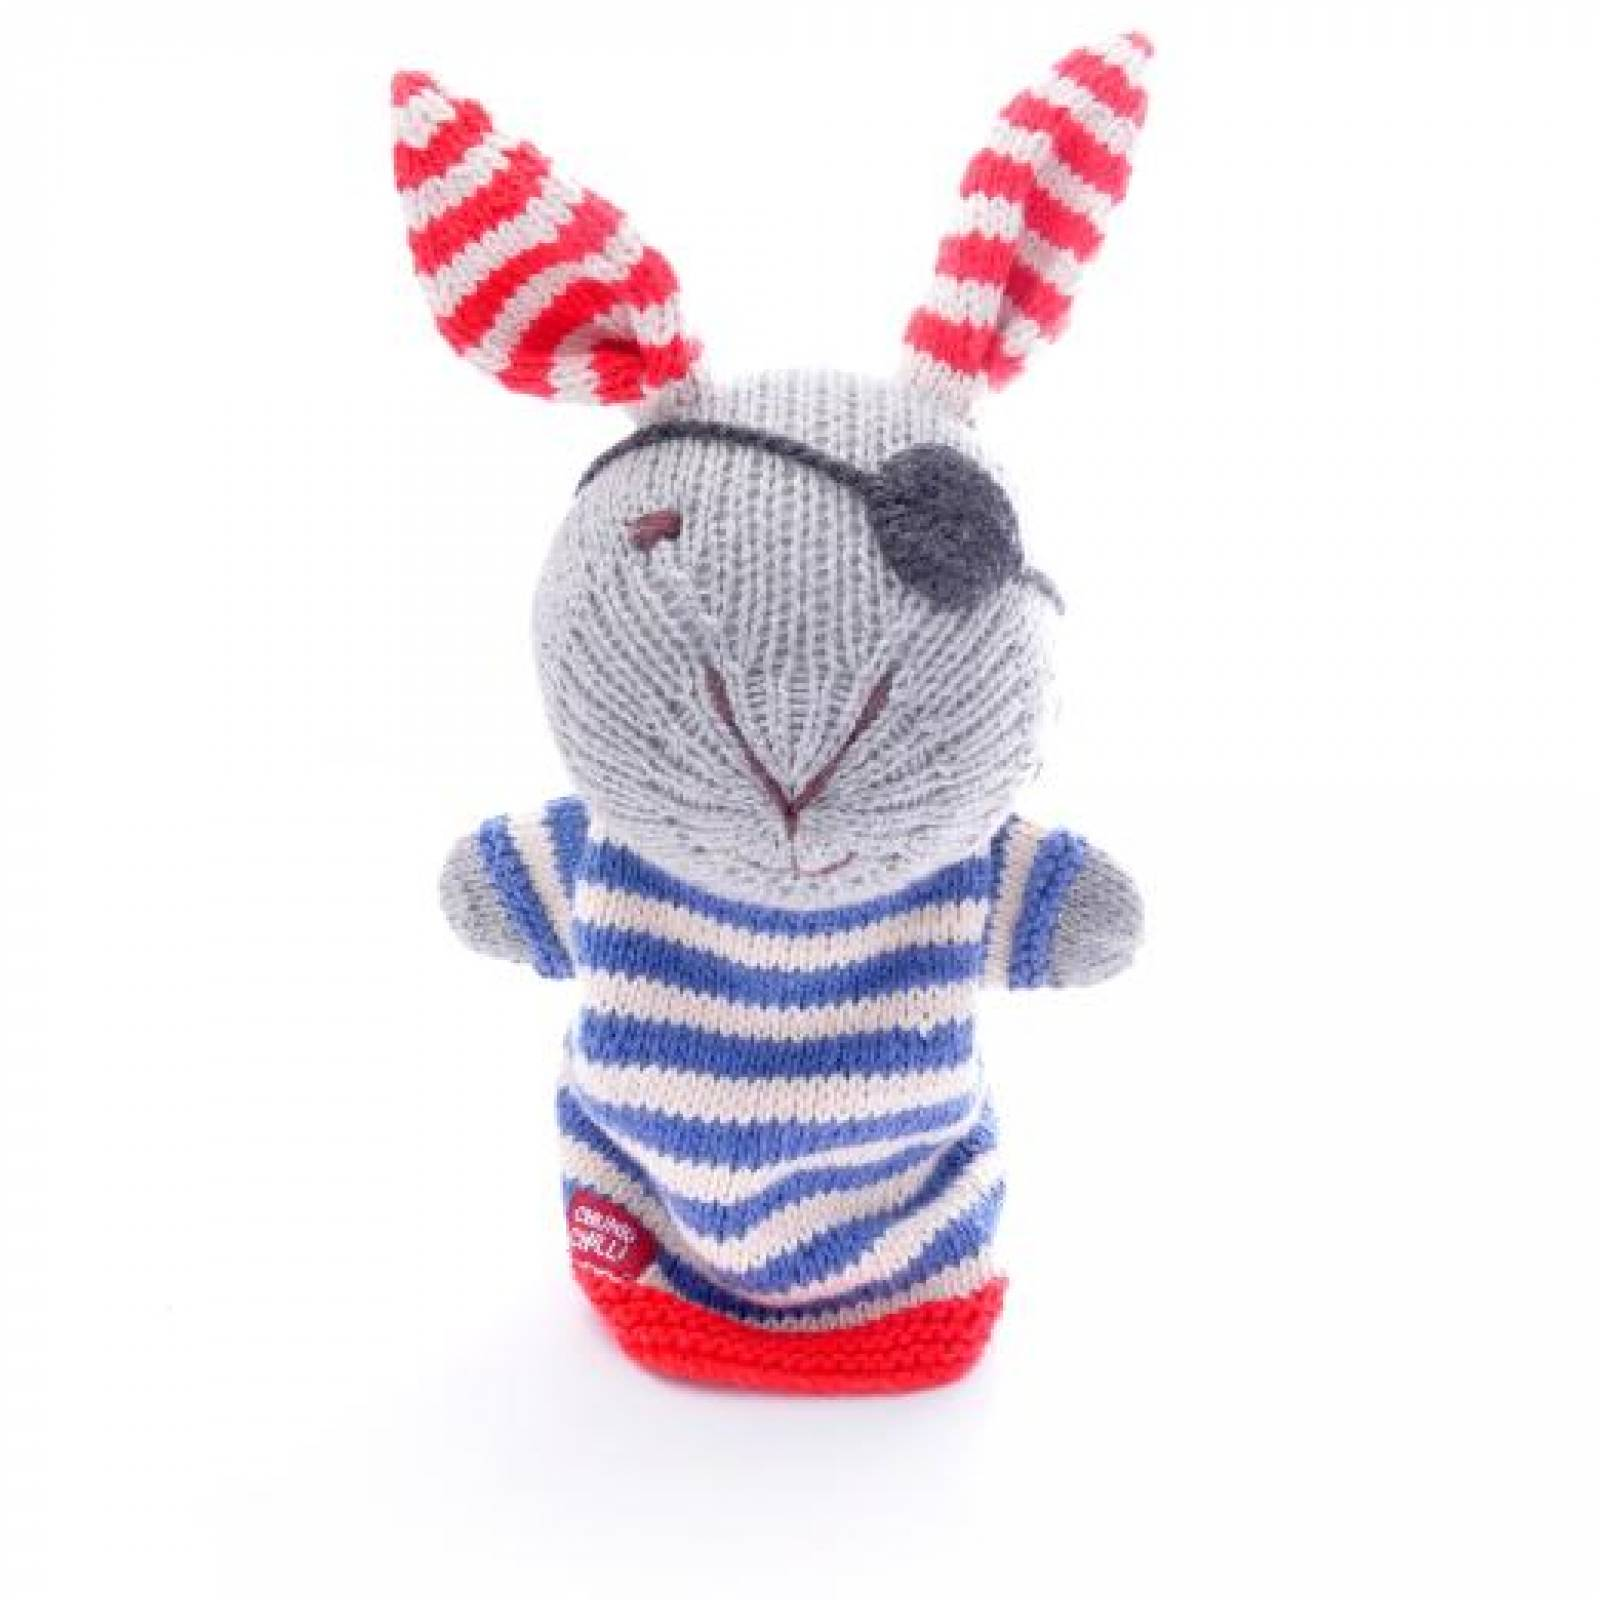 Pirate Rabbit - Hand Knitted Glove Puppet Organic Cotton